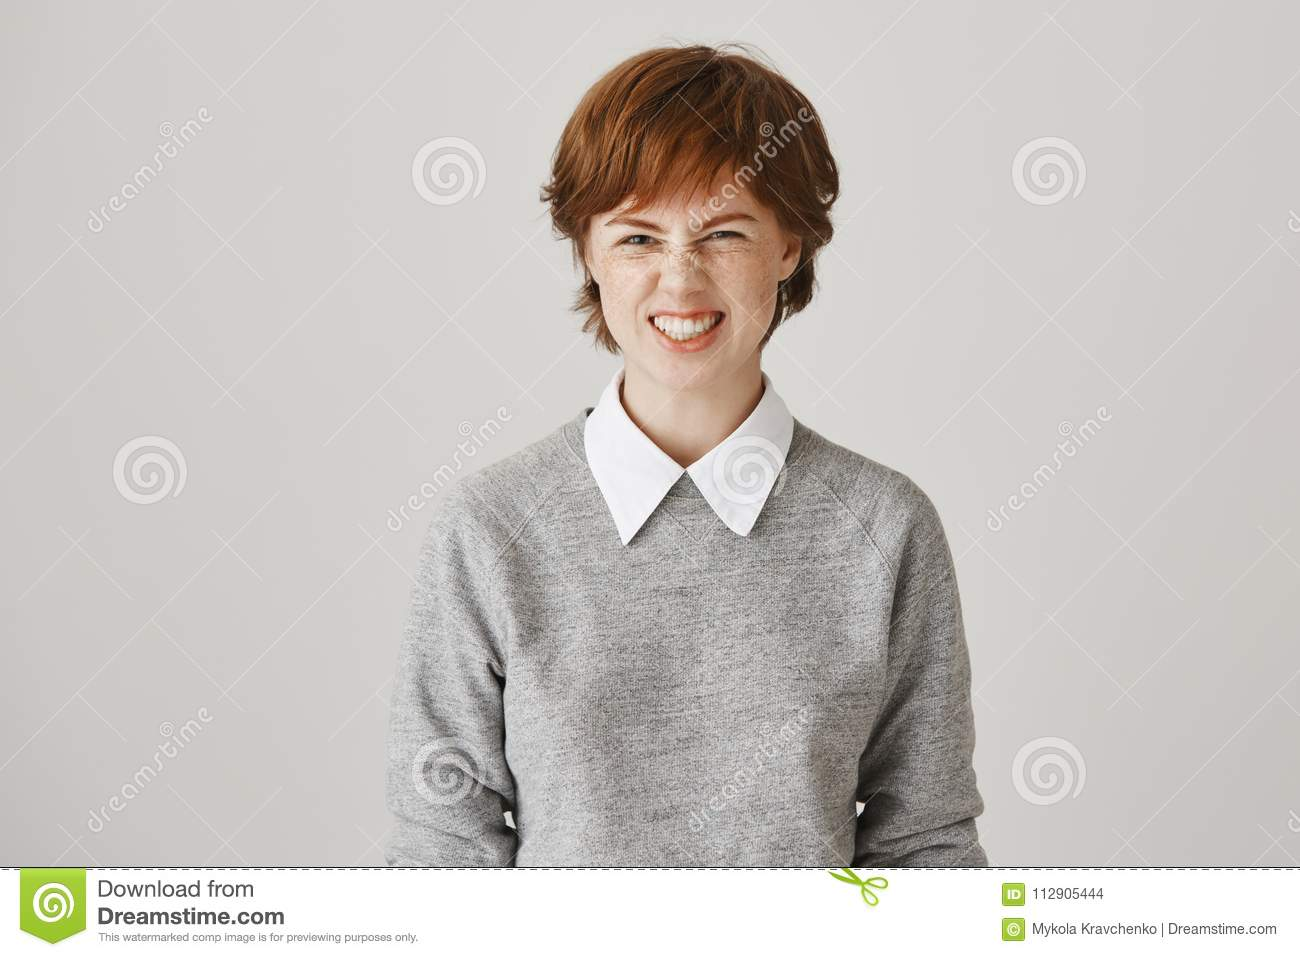 Looking sassy today. Studio portrait of attractive emotive redhead woman  with cute freckles squinting and